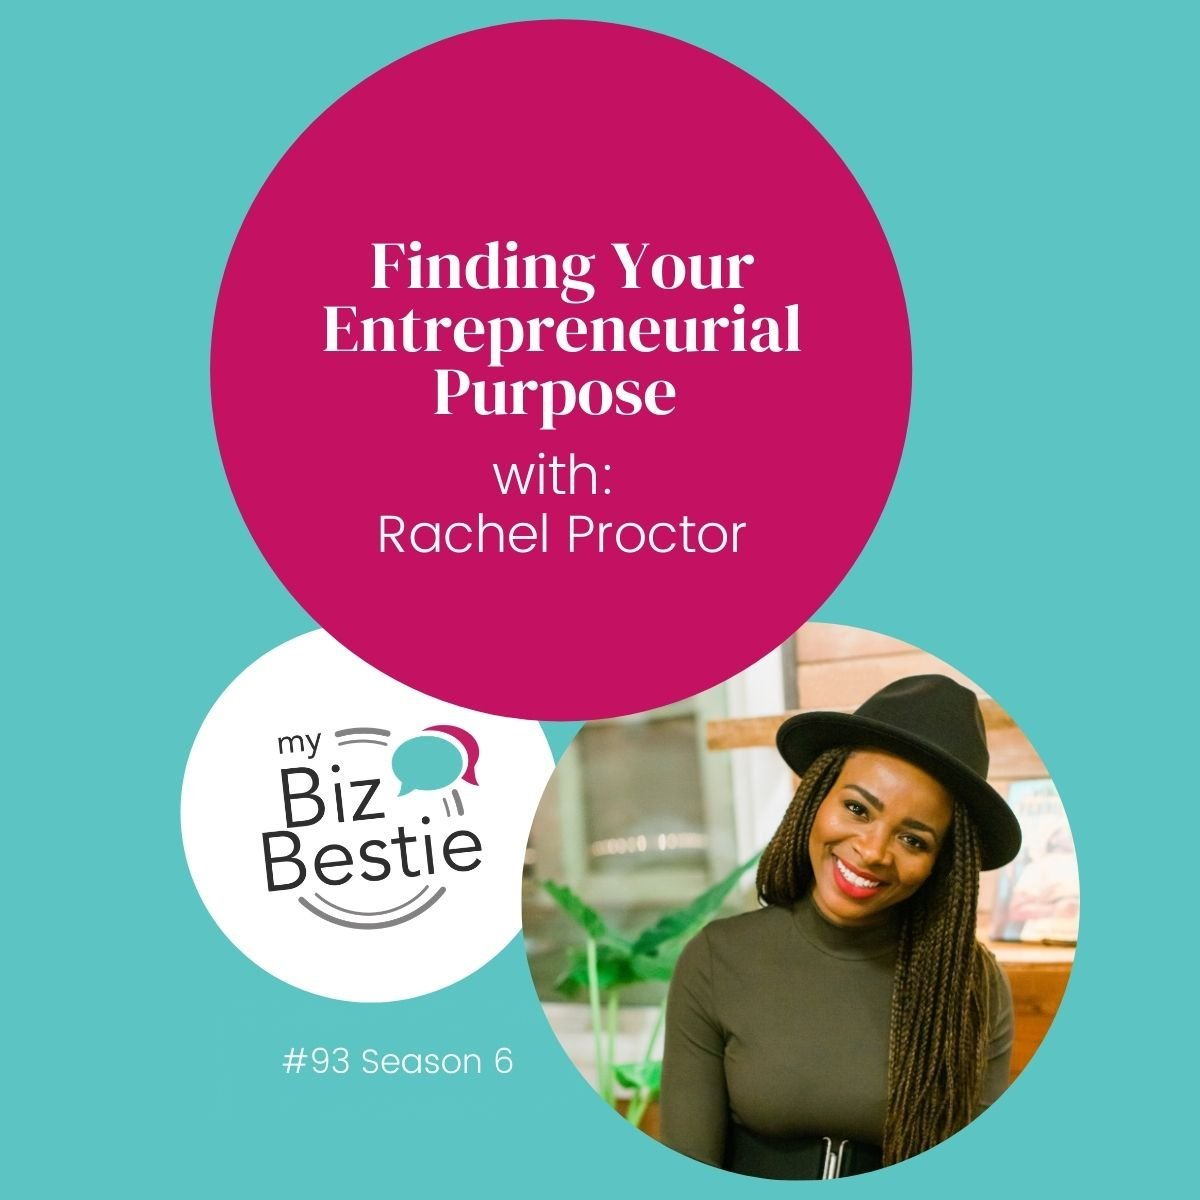 Finding Your Entrepreneurial Purpose With Rachel Proctor